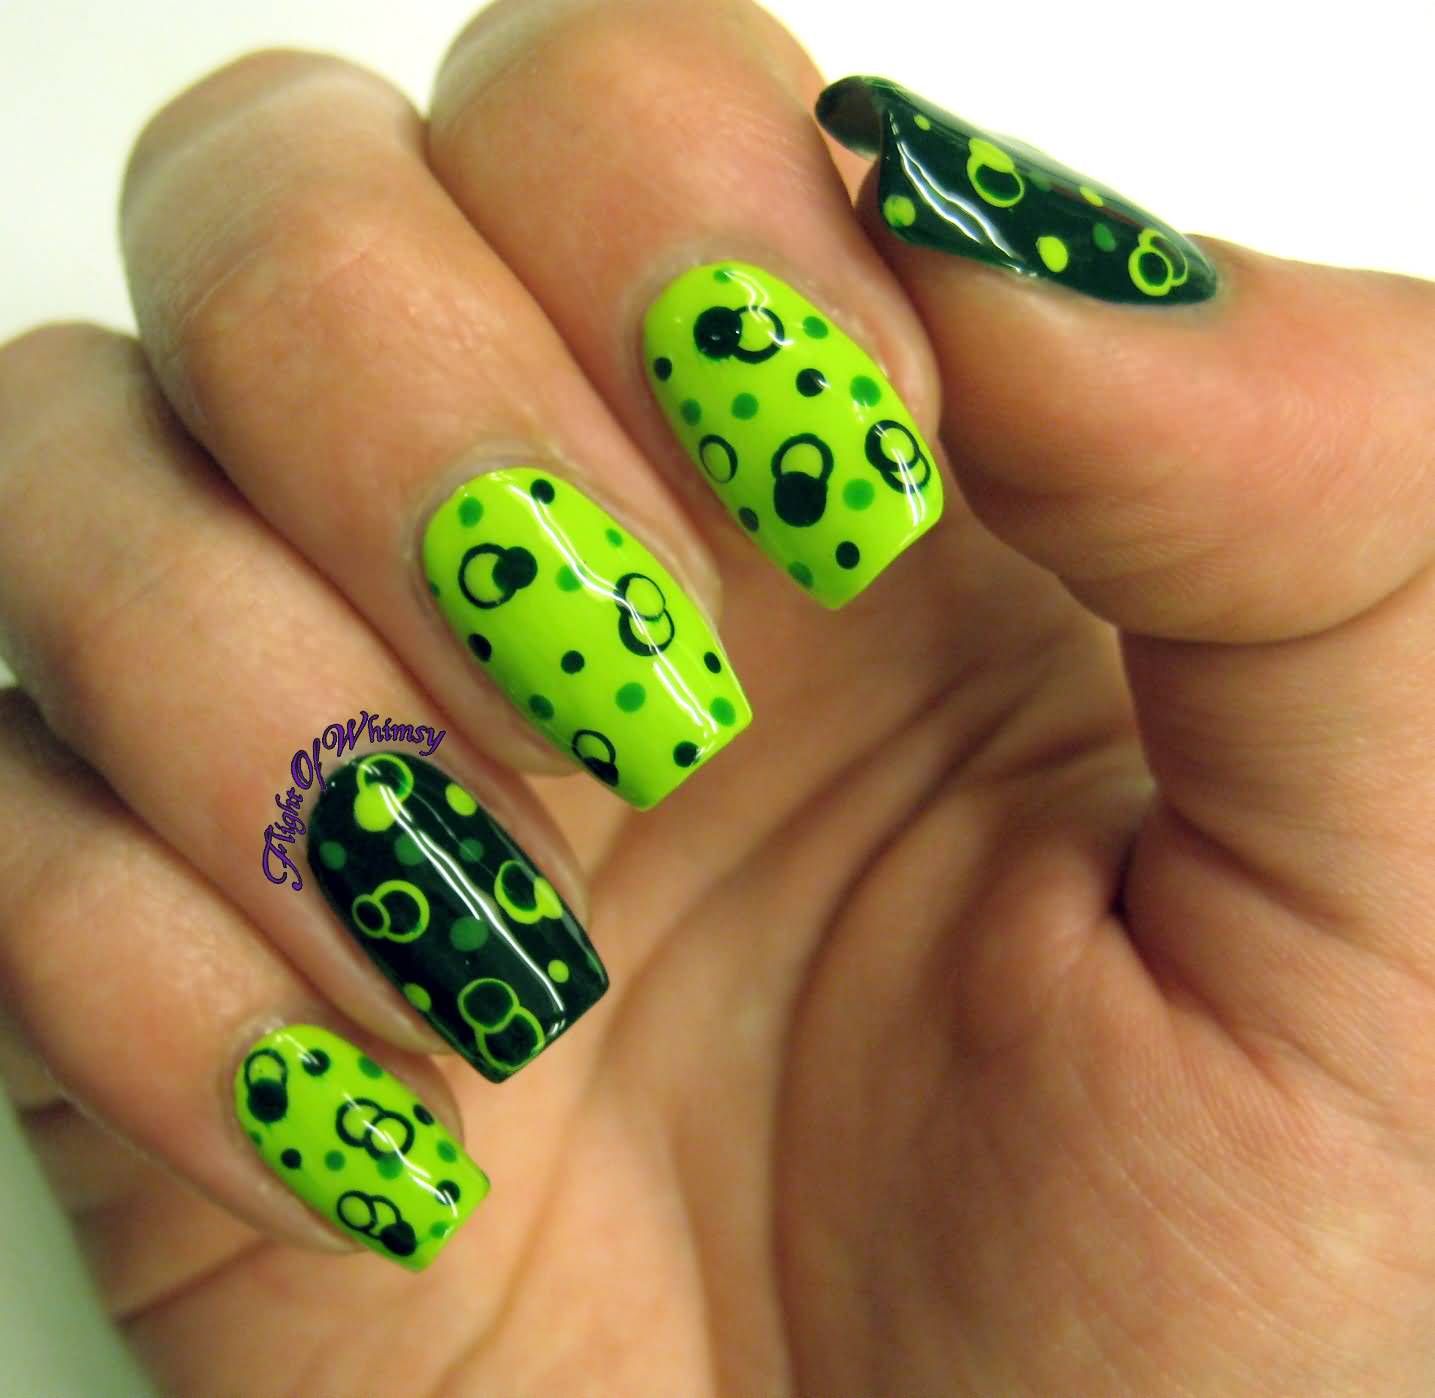 65 most stylish green and black nail art design ideas neon green and black polka dots nail art prinsesfo Images